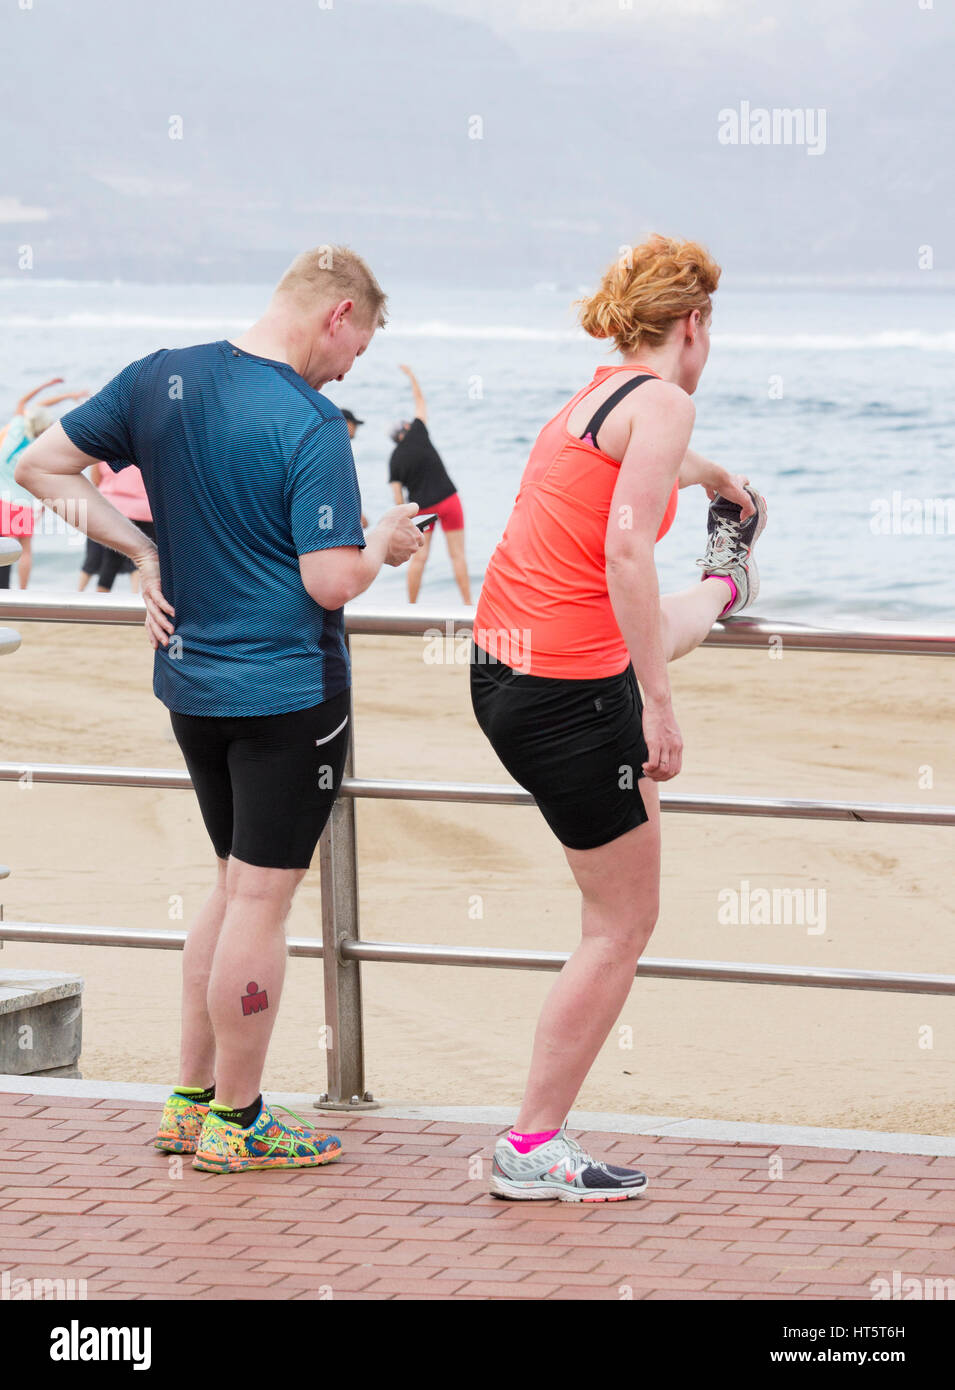 Joggers stretching overlooking beach. Man looking at mobile phone screen Stock Photo